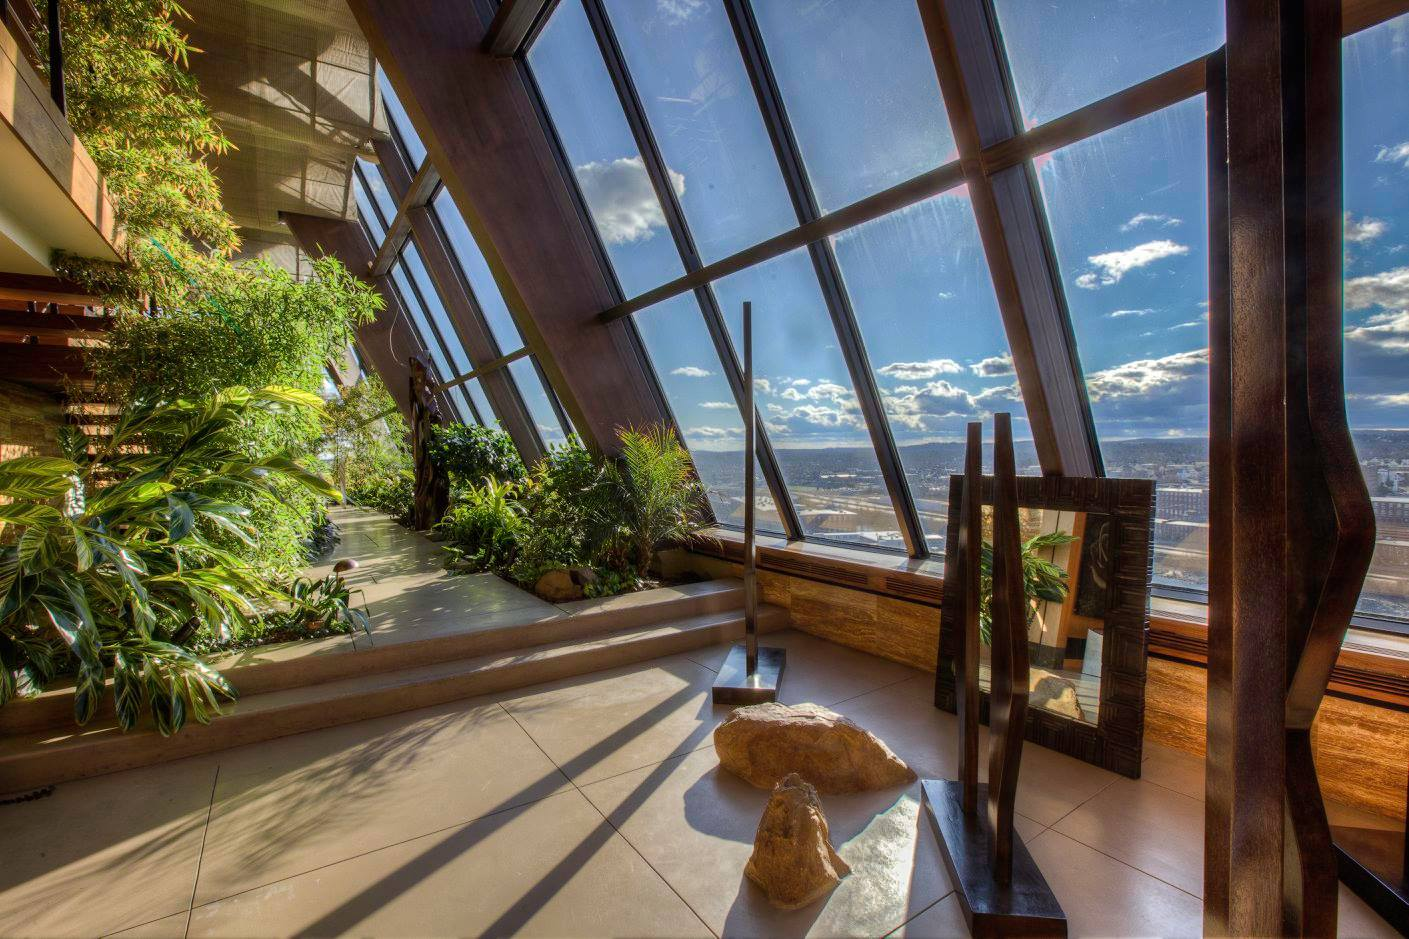 New Luxury Penthouse Opens Perched High Atop New England